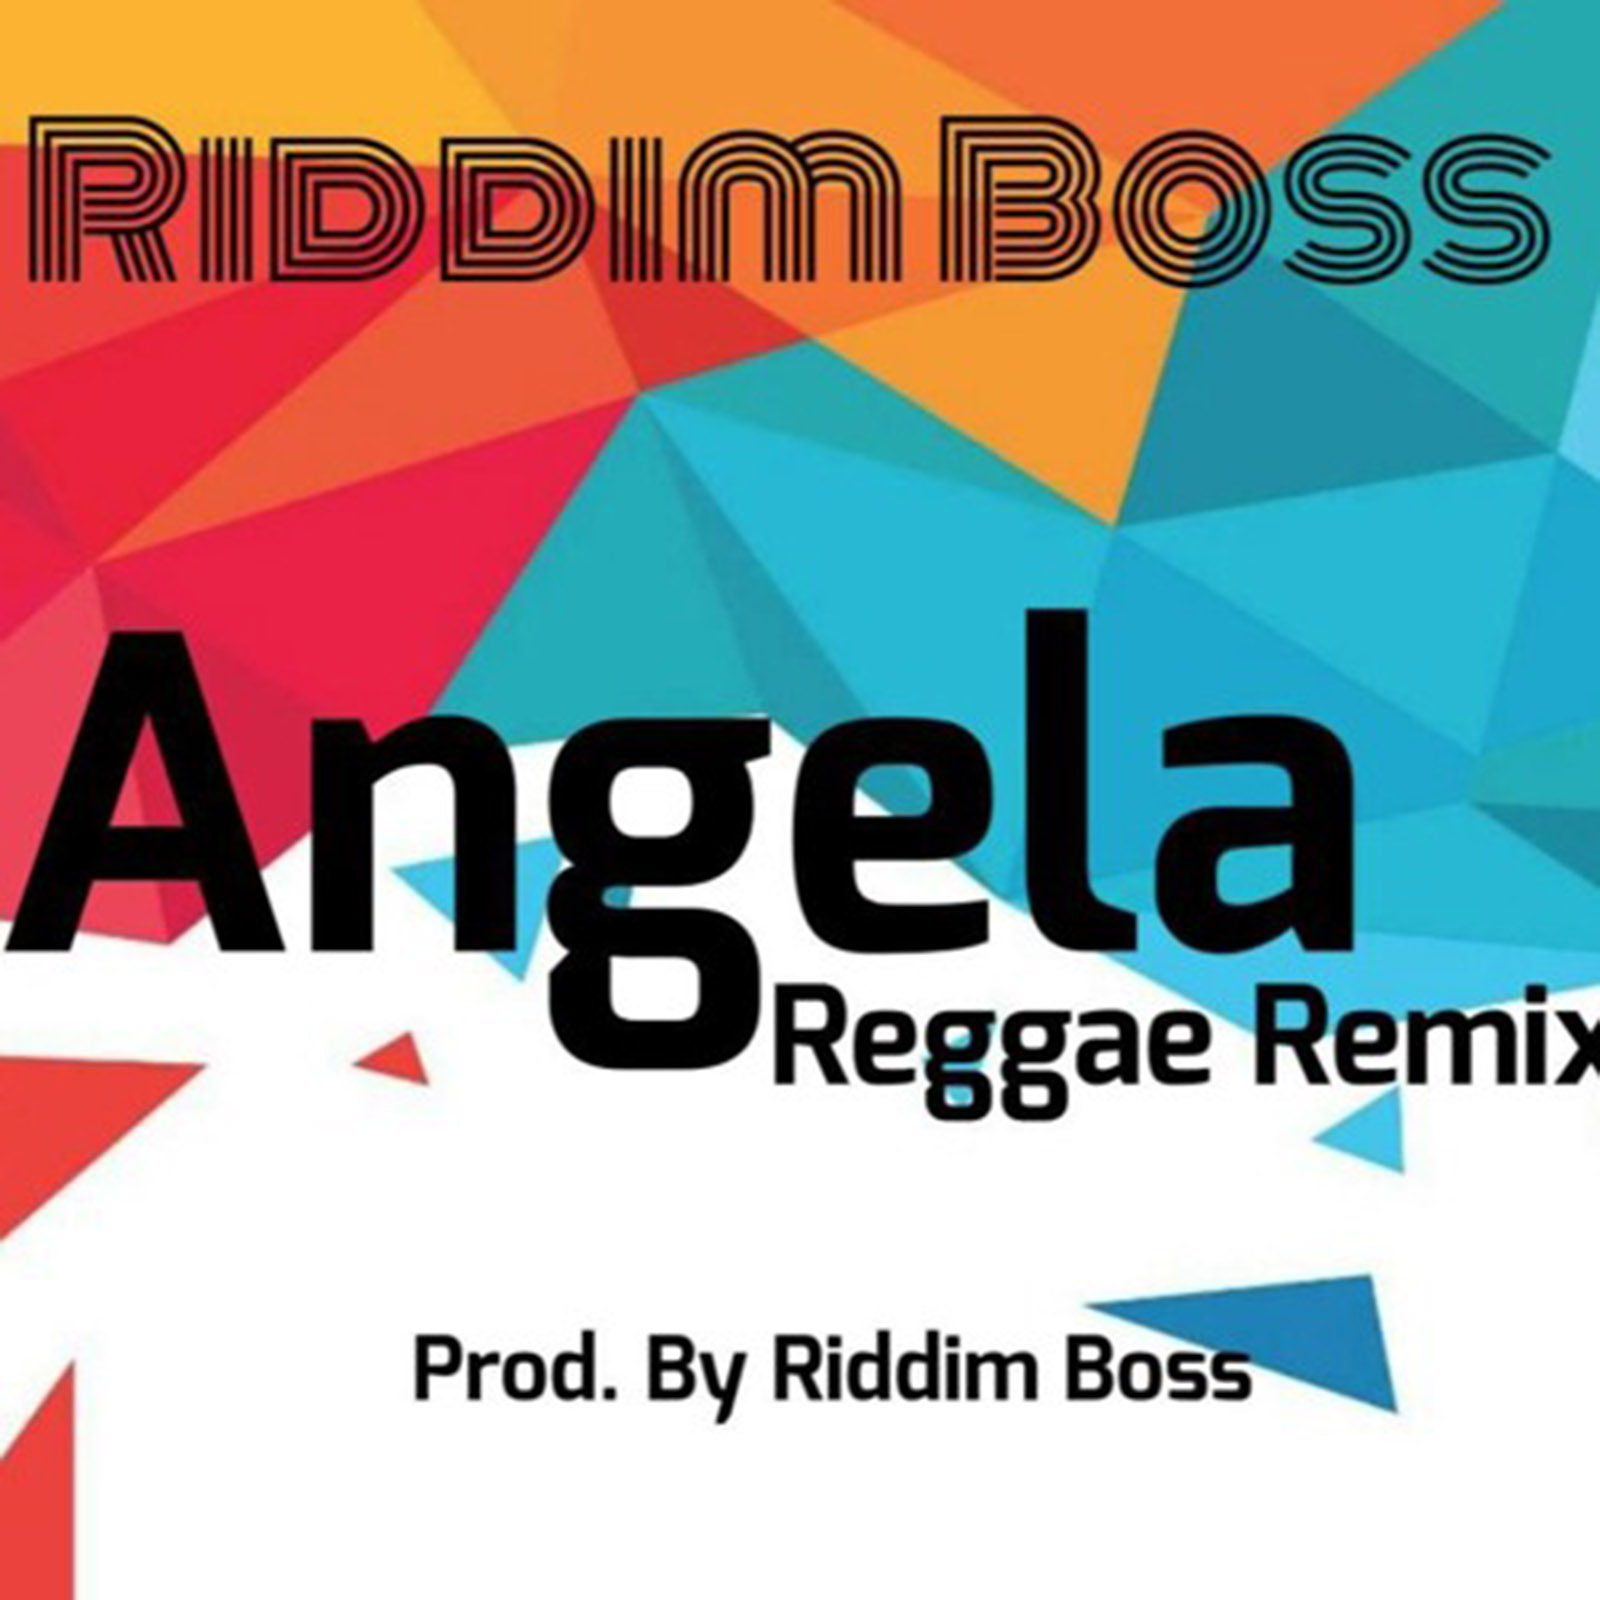 Angela(Reggae Remix) by Riddim Boss